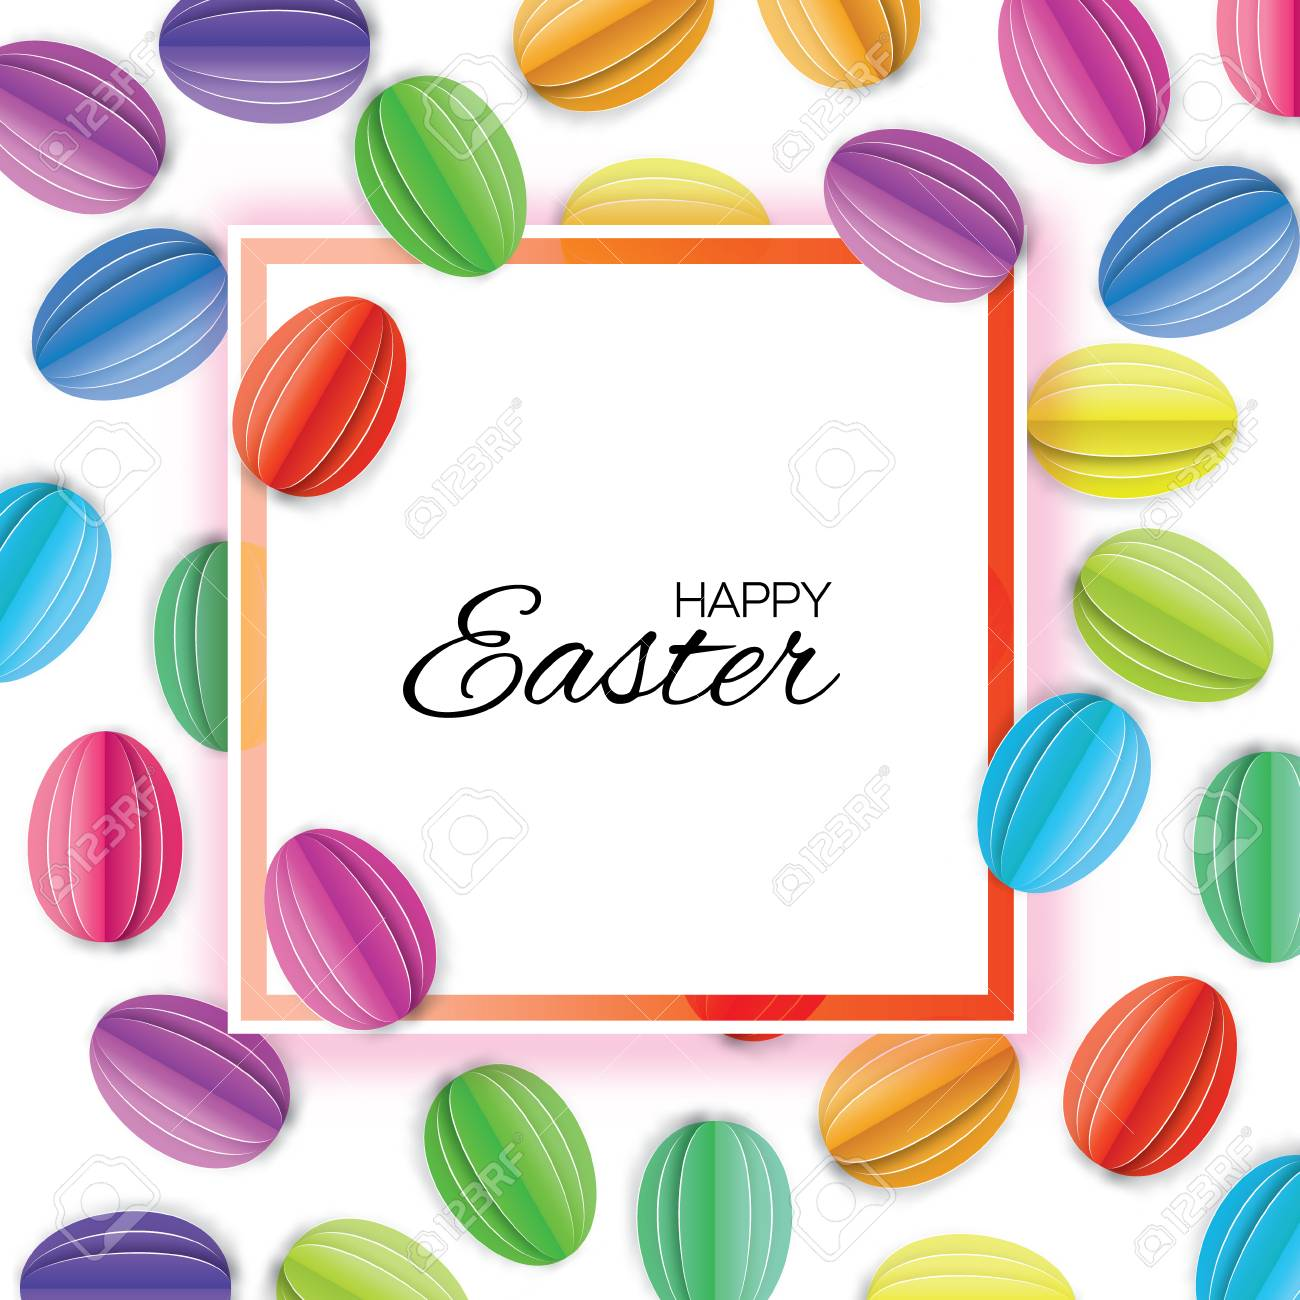 Origami Happy Easter. Colorful Paper Cut Easter Egg. Square Frame ...